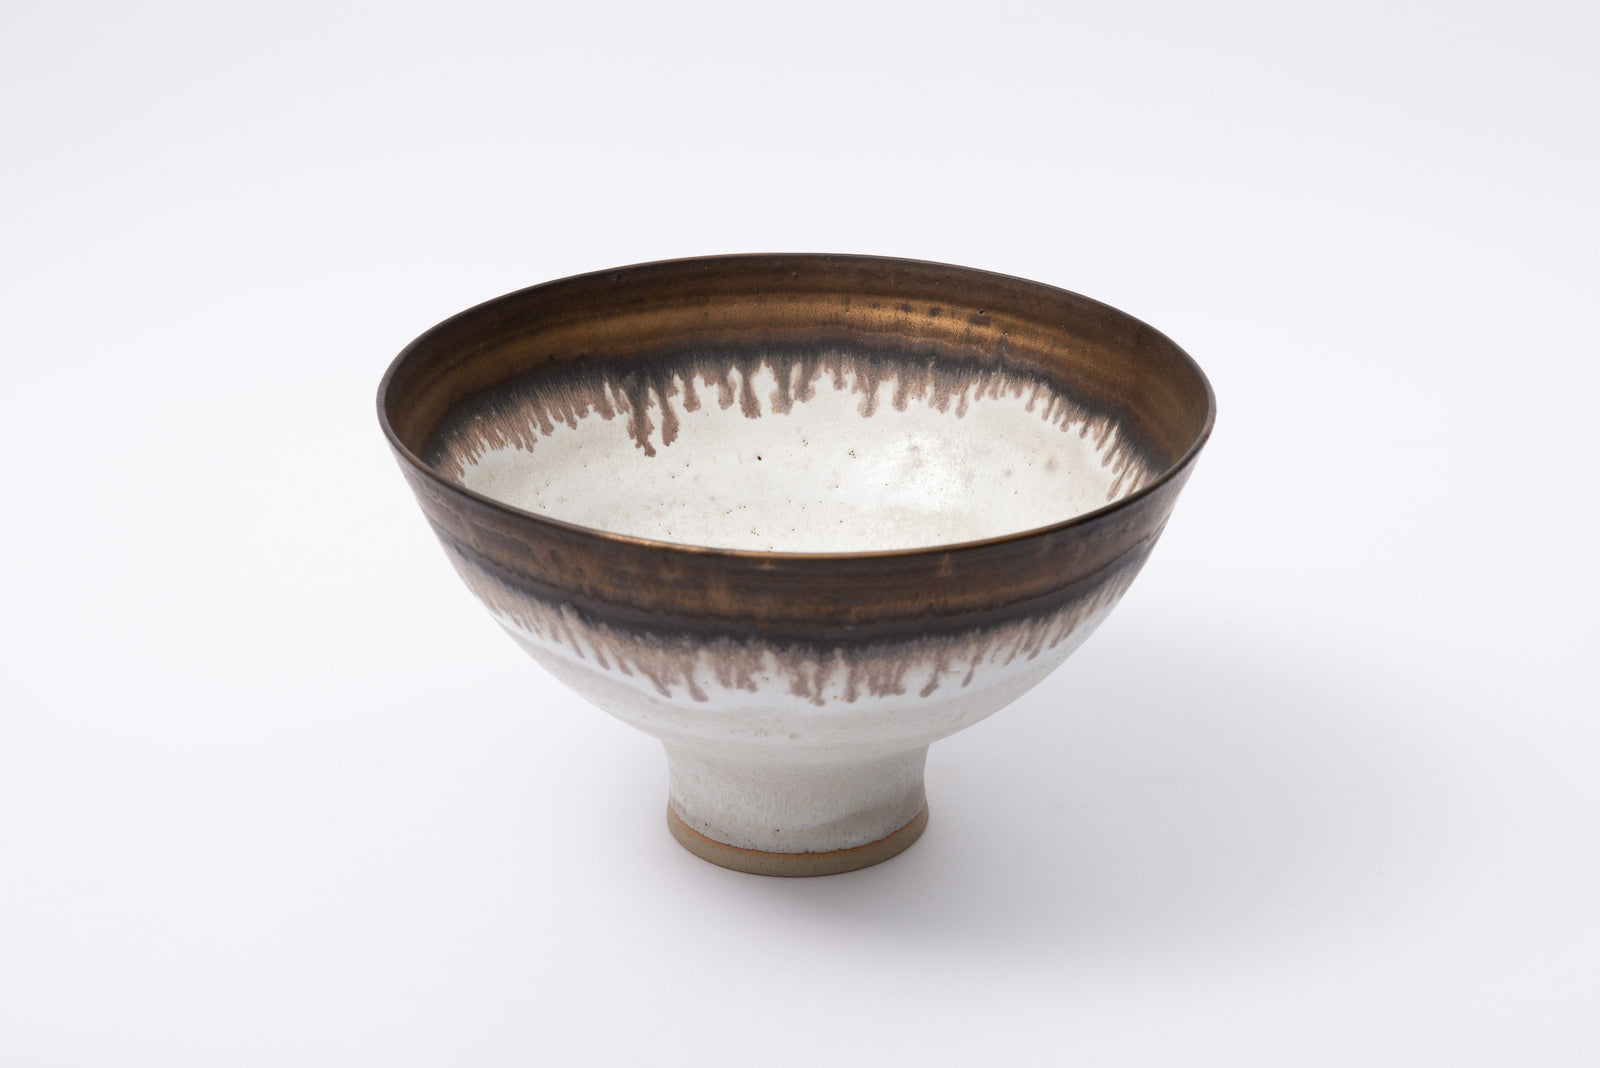 茶碗 / Footed bowl with manganese rim,